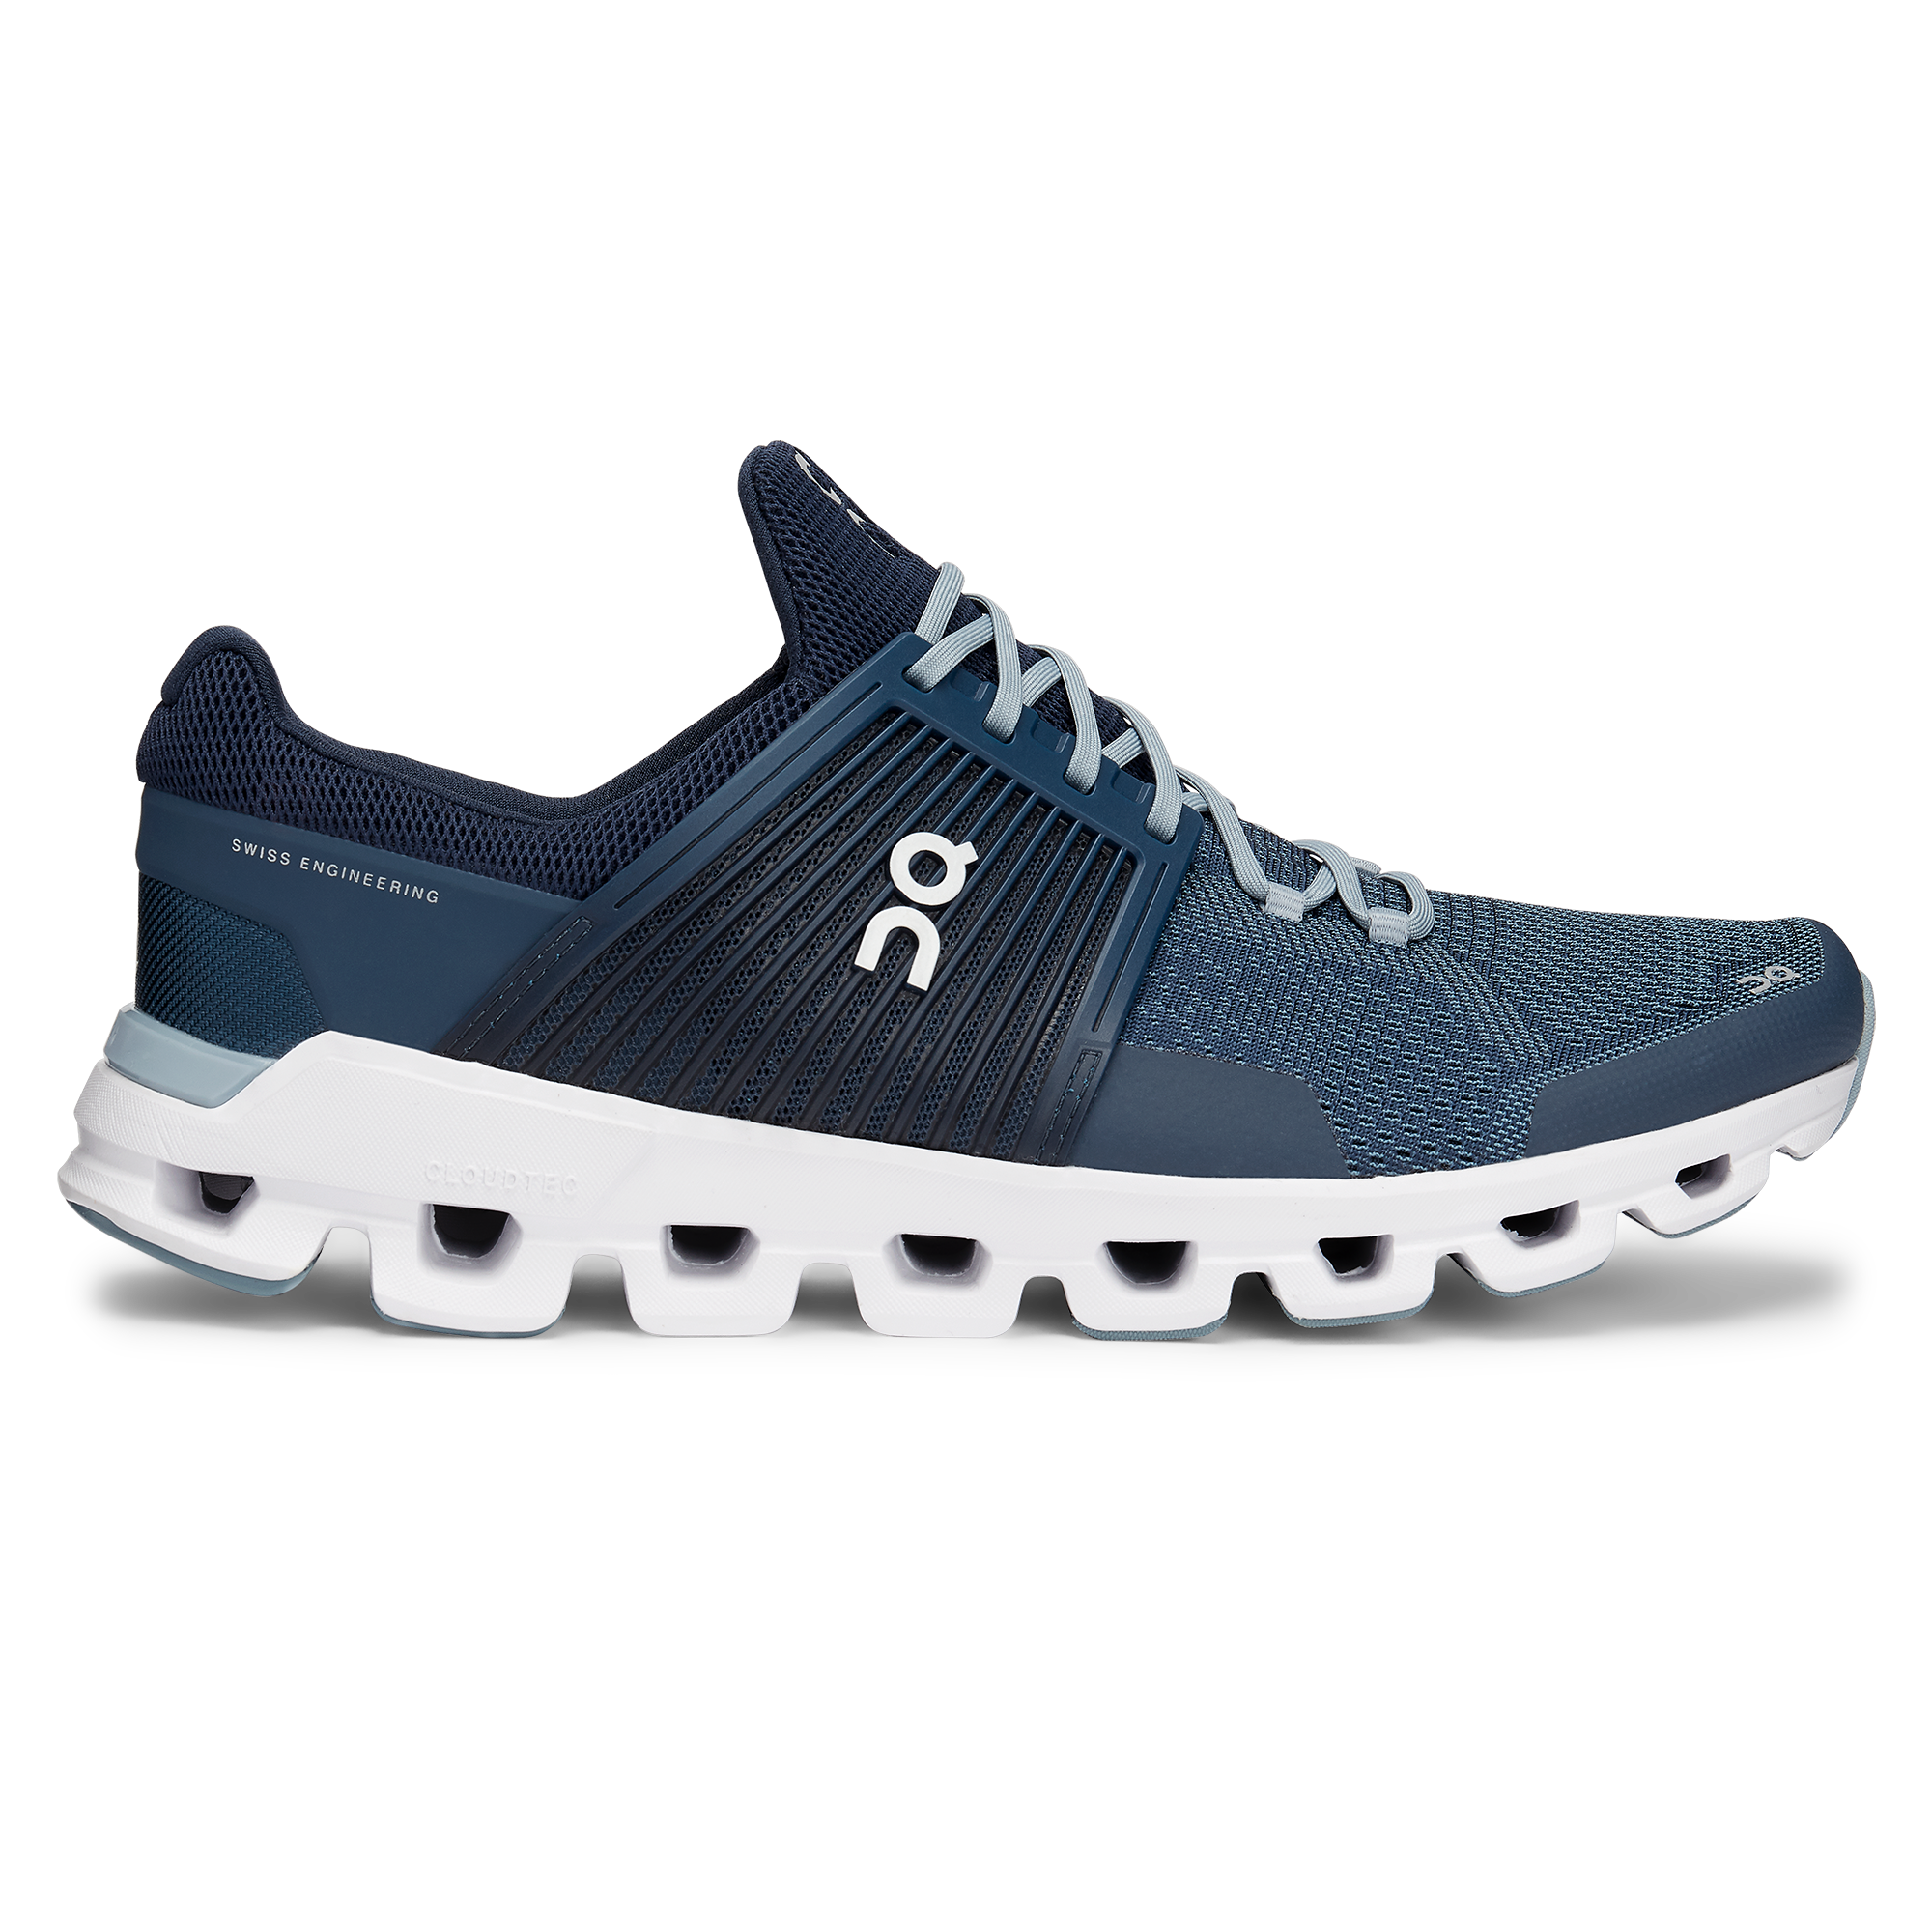 Cloudswift Road Shoe For Urban Running | On